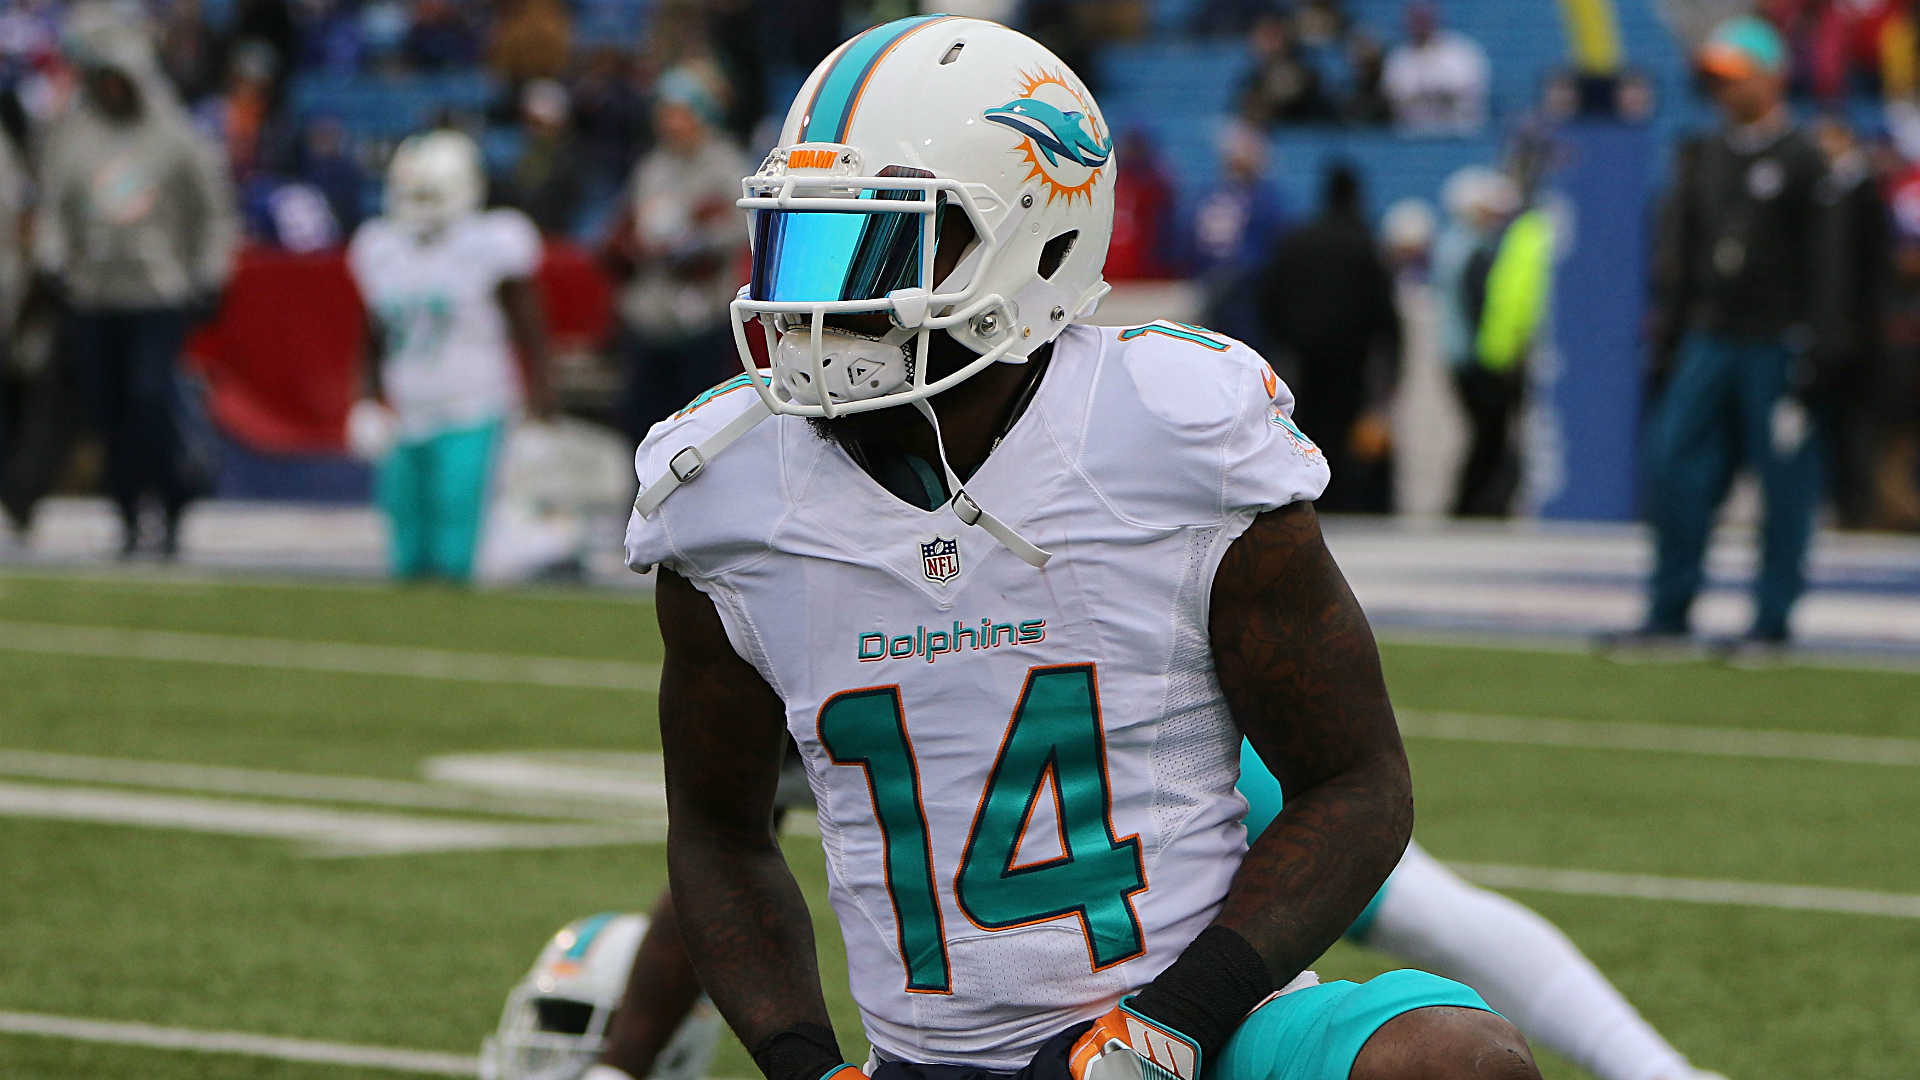 Miami Dolphins star wide receiver under investigation